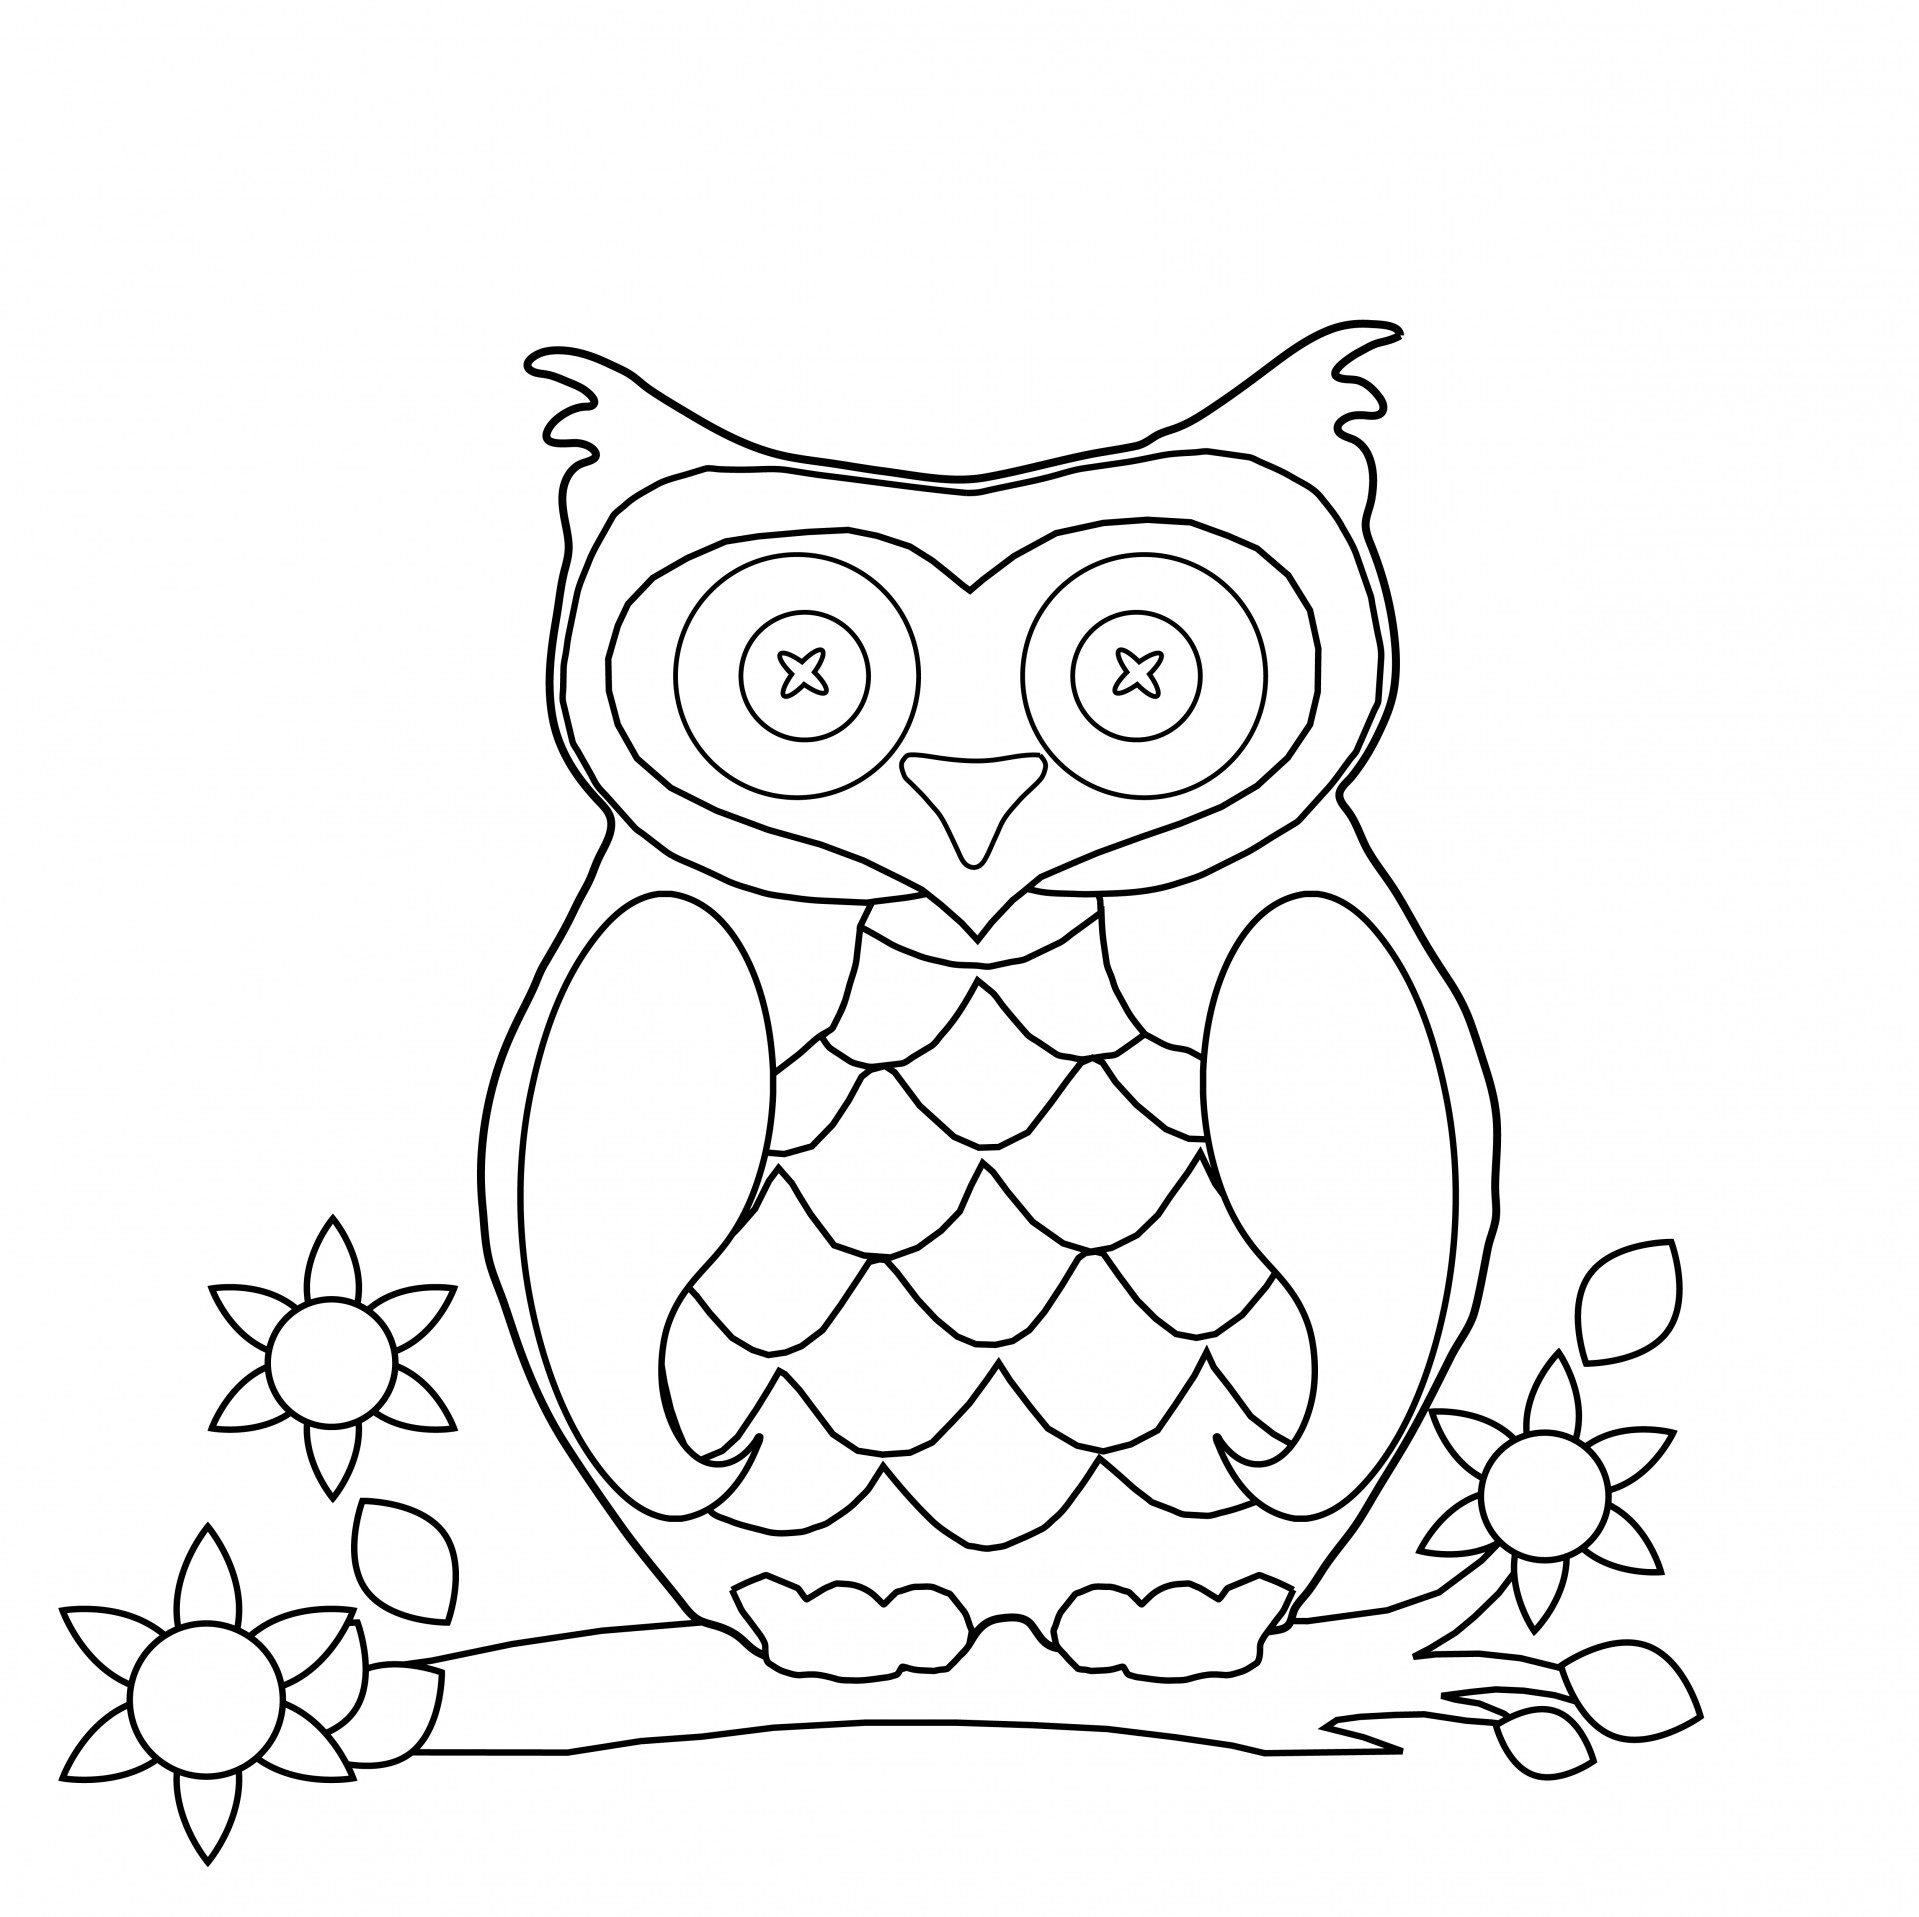 free printable design coloring pages get this printable geometric coloring pages 73999 printable design coloring pages free